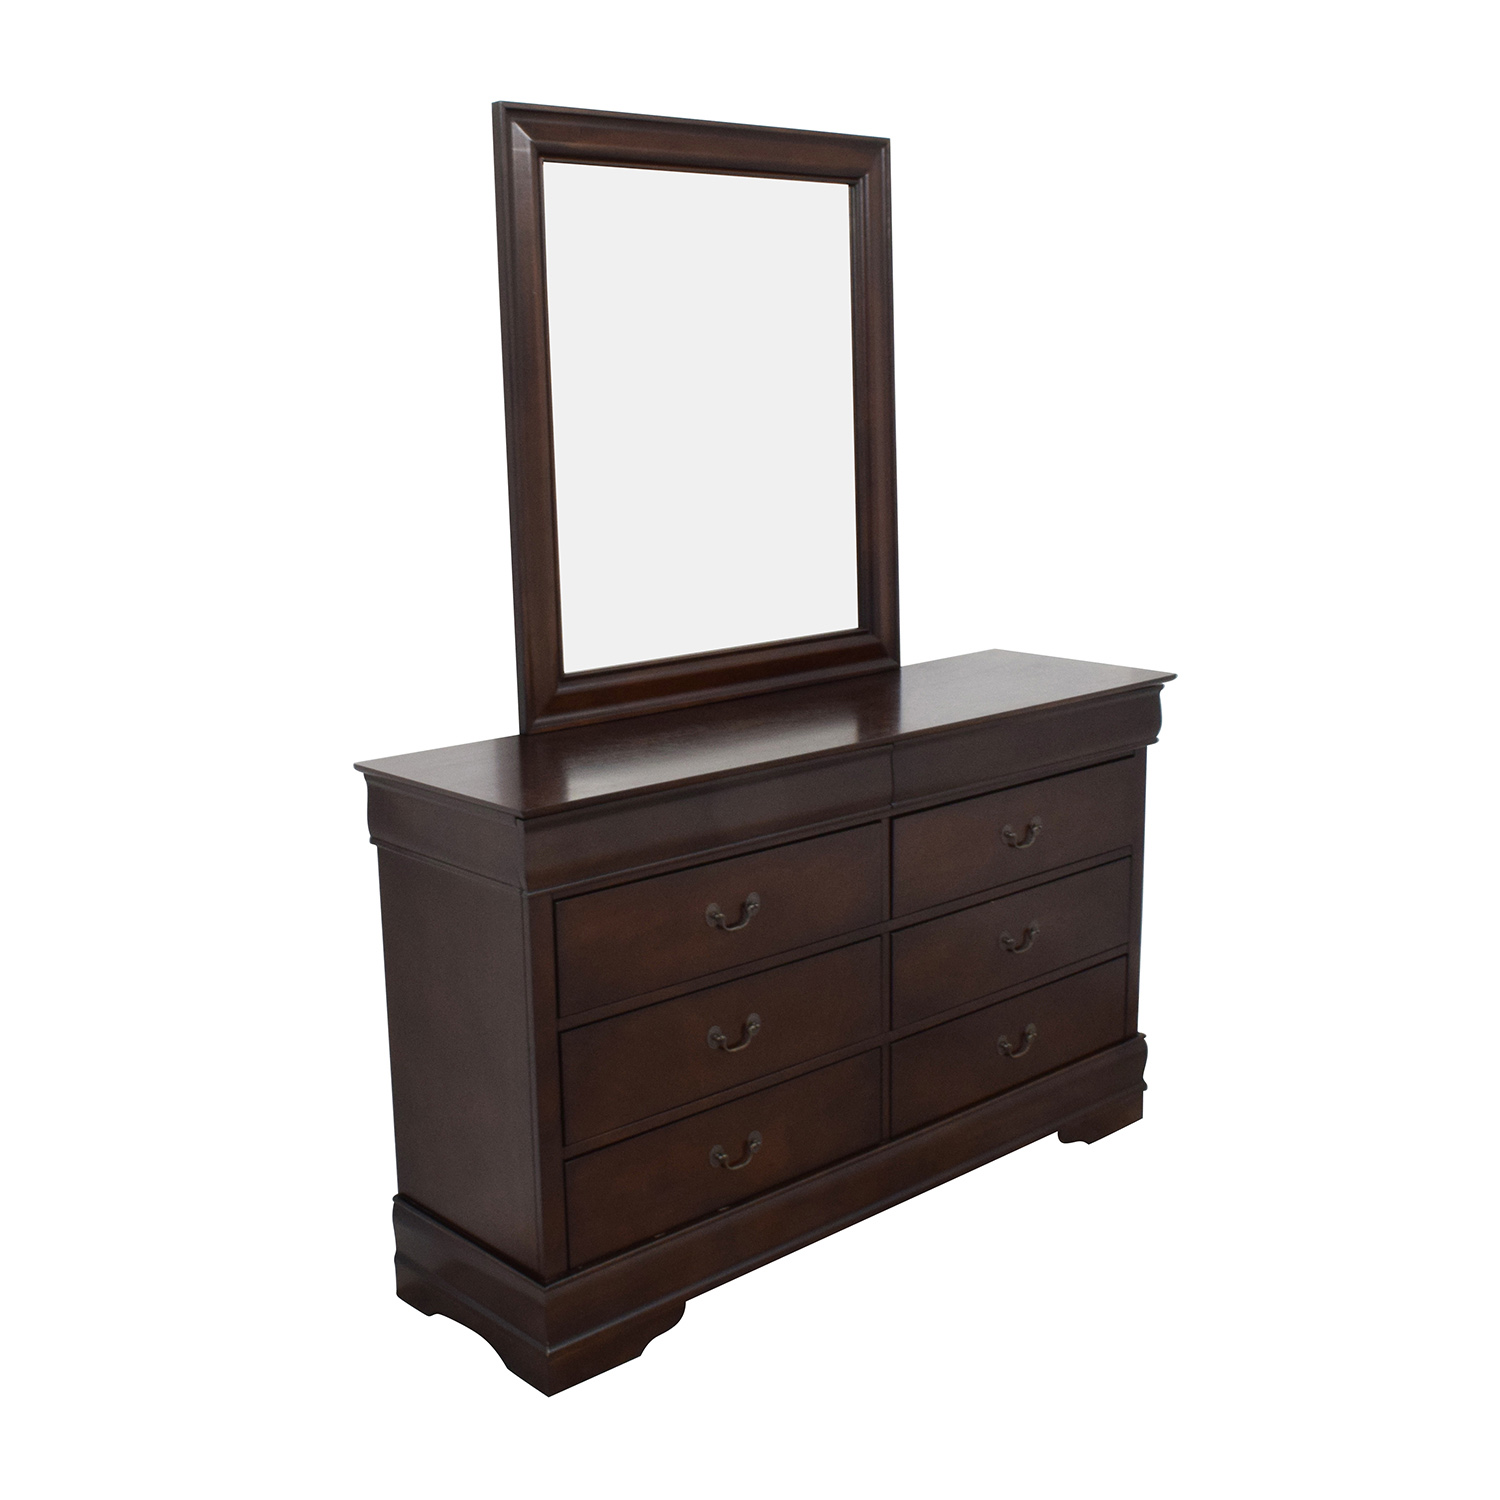 Home Meridian International Home Meridian International Eight-Drawer Dresser with Mirror second hand